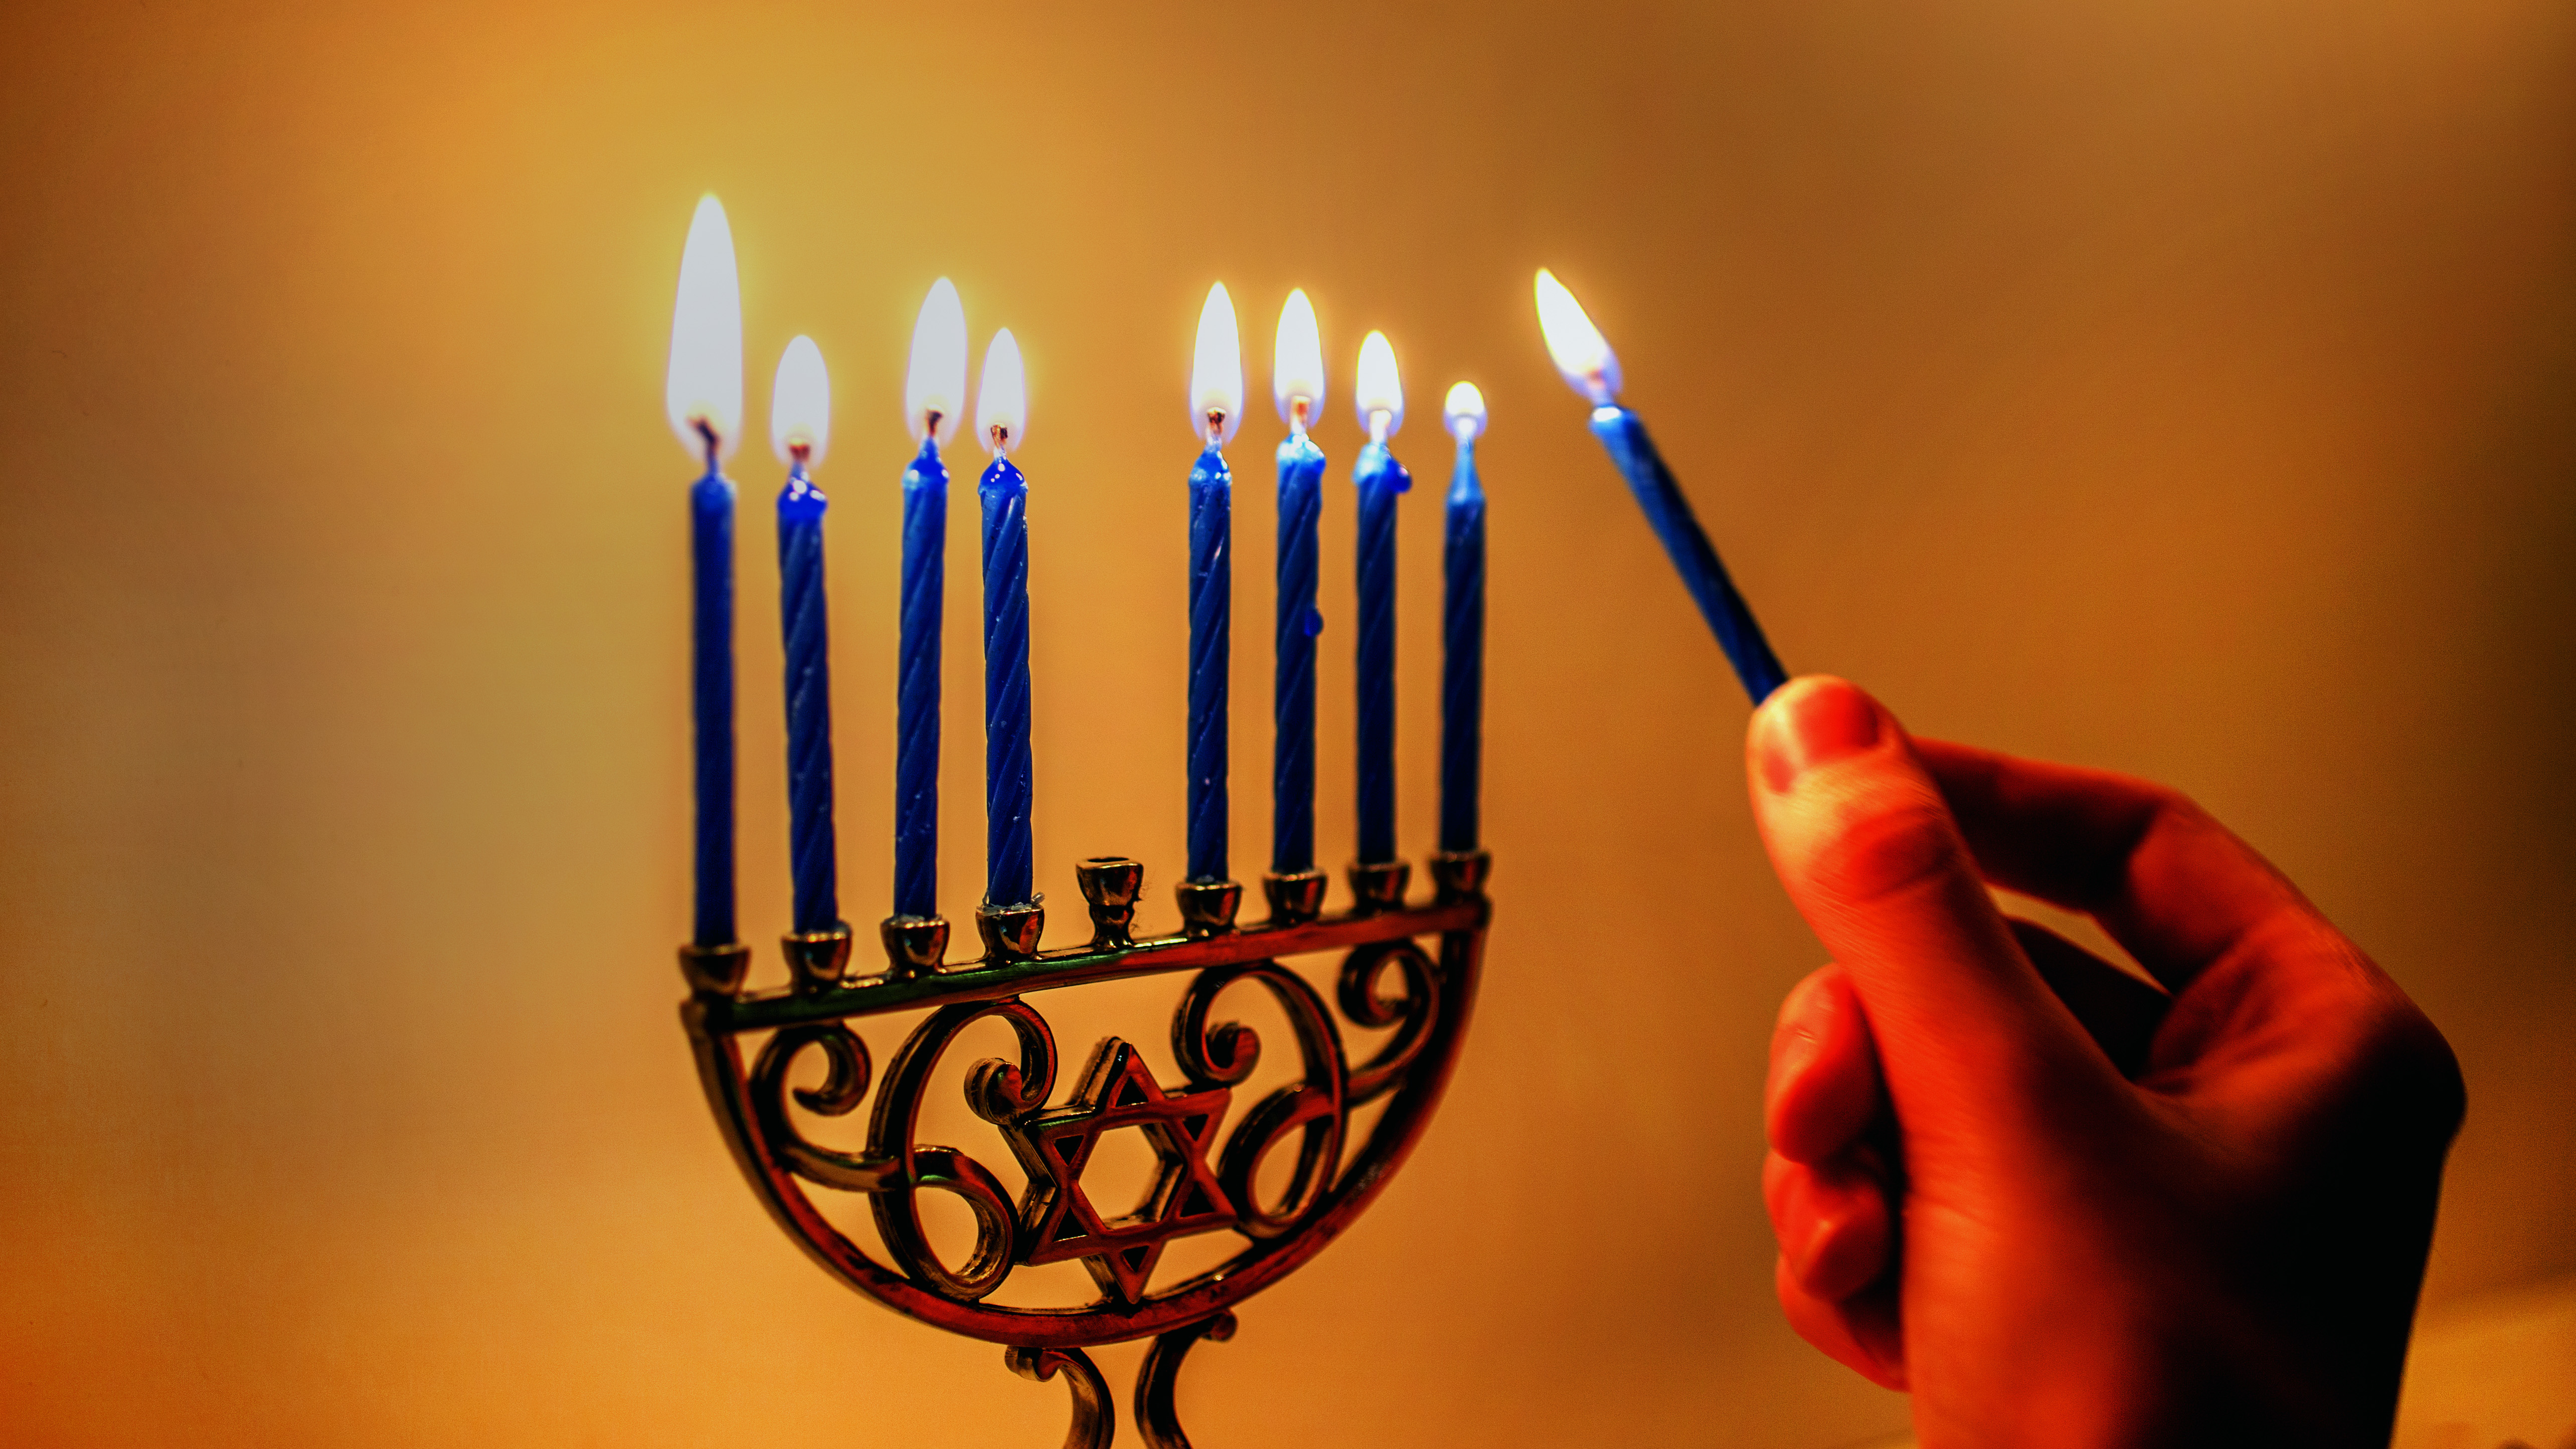 Hanukkah Backgrounds, Compatible - PC, Mobile, Gadgets| 5137x2890 px